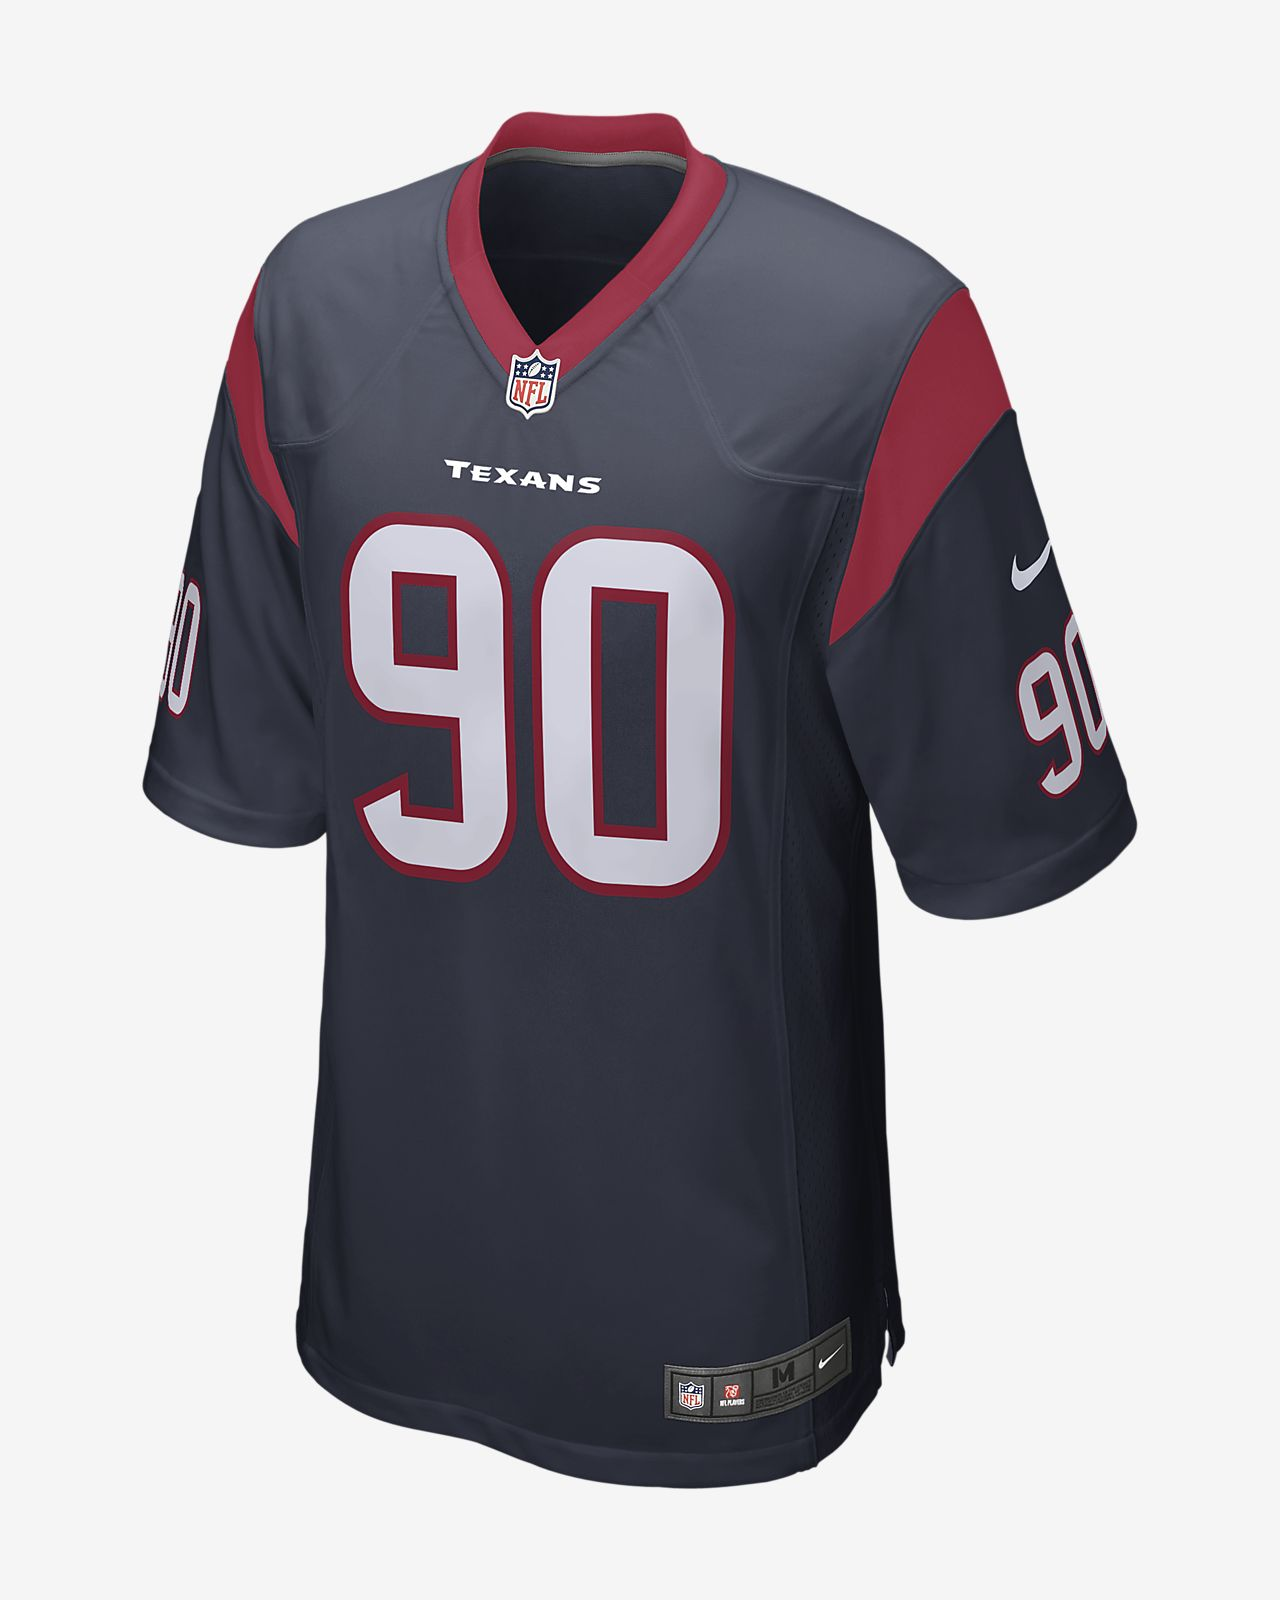 size 40 153aa 05b84 NFL Houston Texans (Jadeveon Clowney) Men's Game Football Jersey